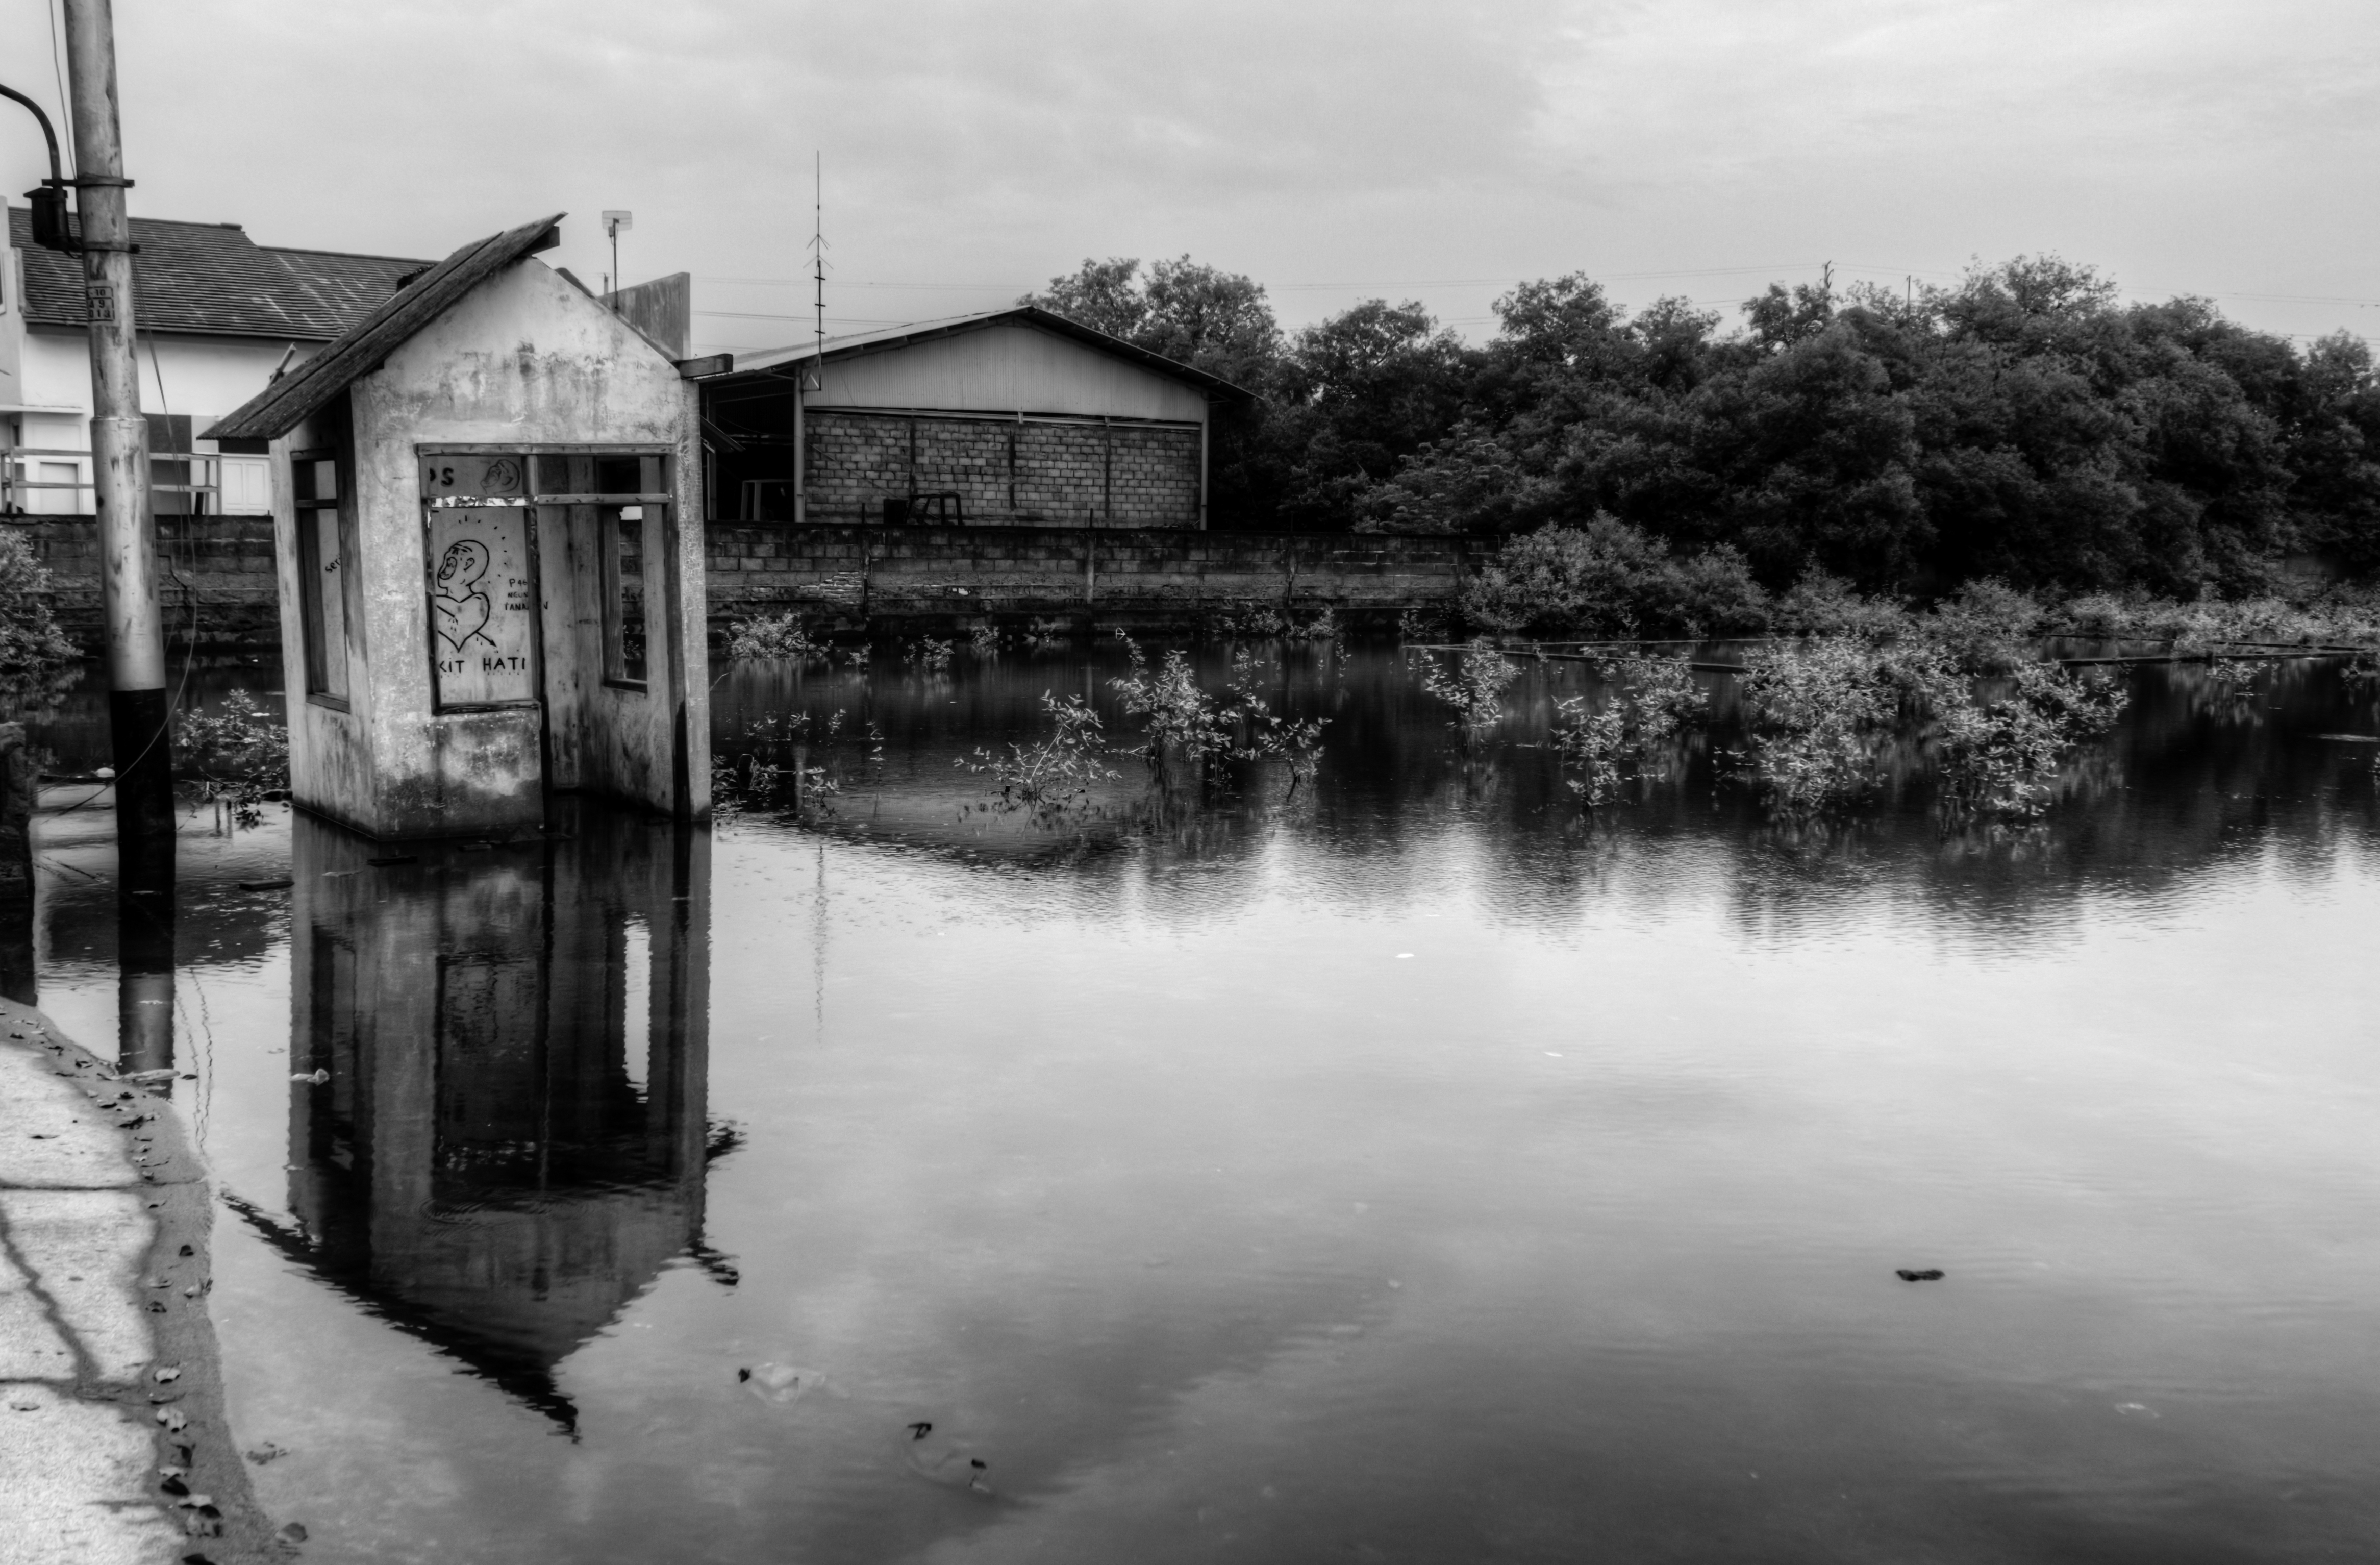 Abandoned Guardhouse In Flooded Parking Lot Tanjung Mas Harbour Semarang Full Size Image